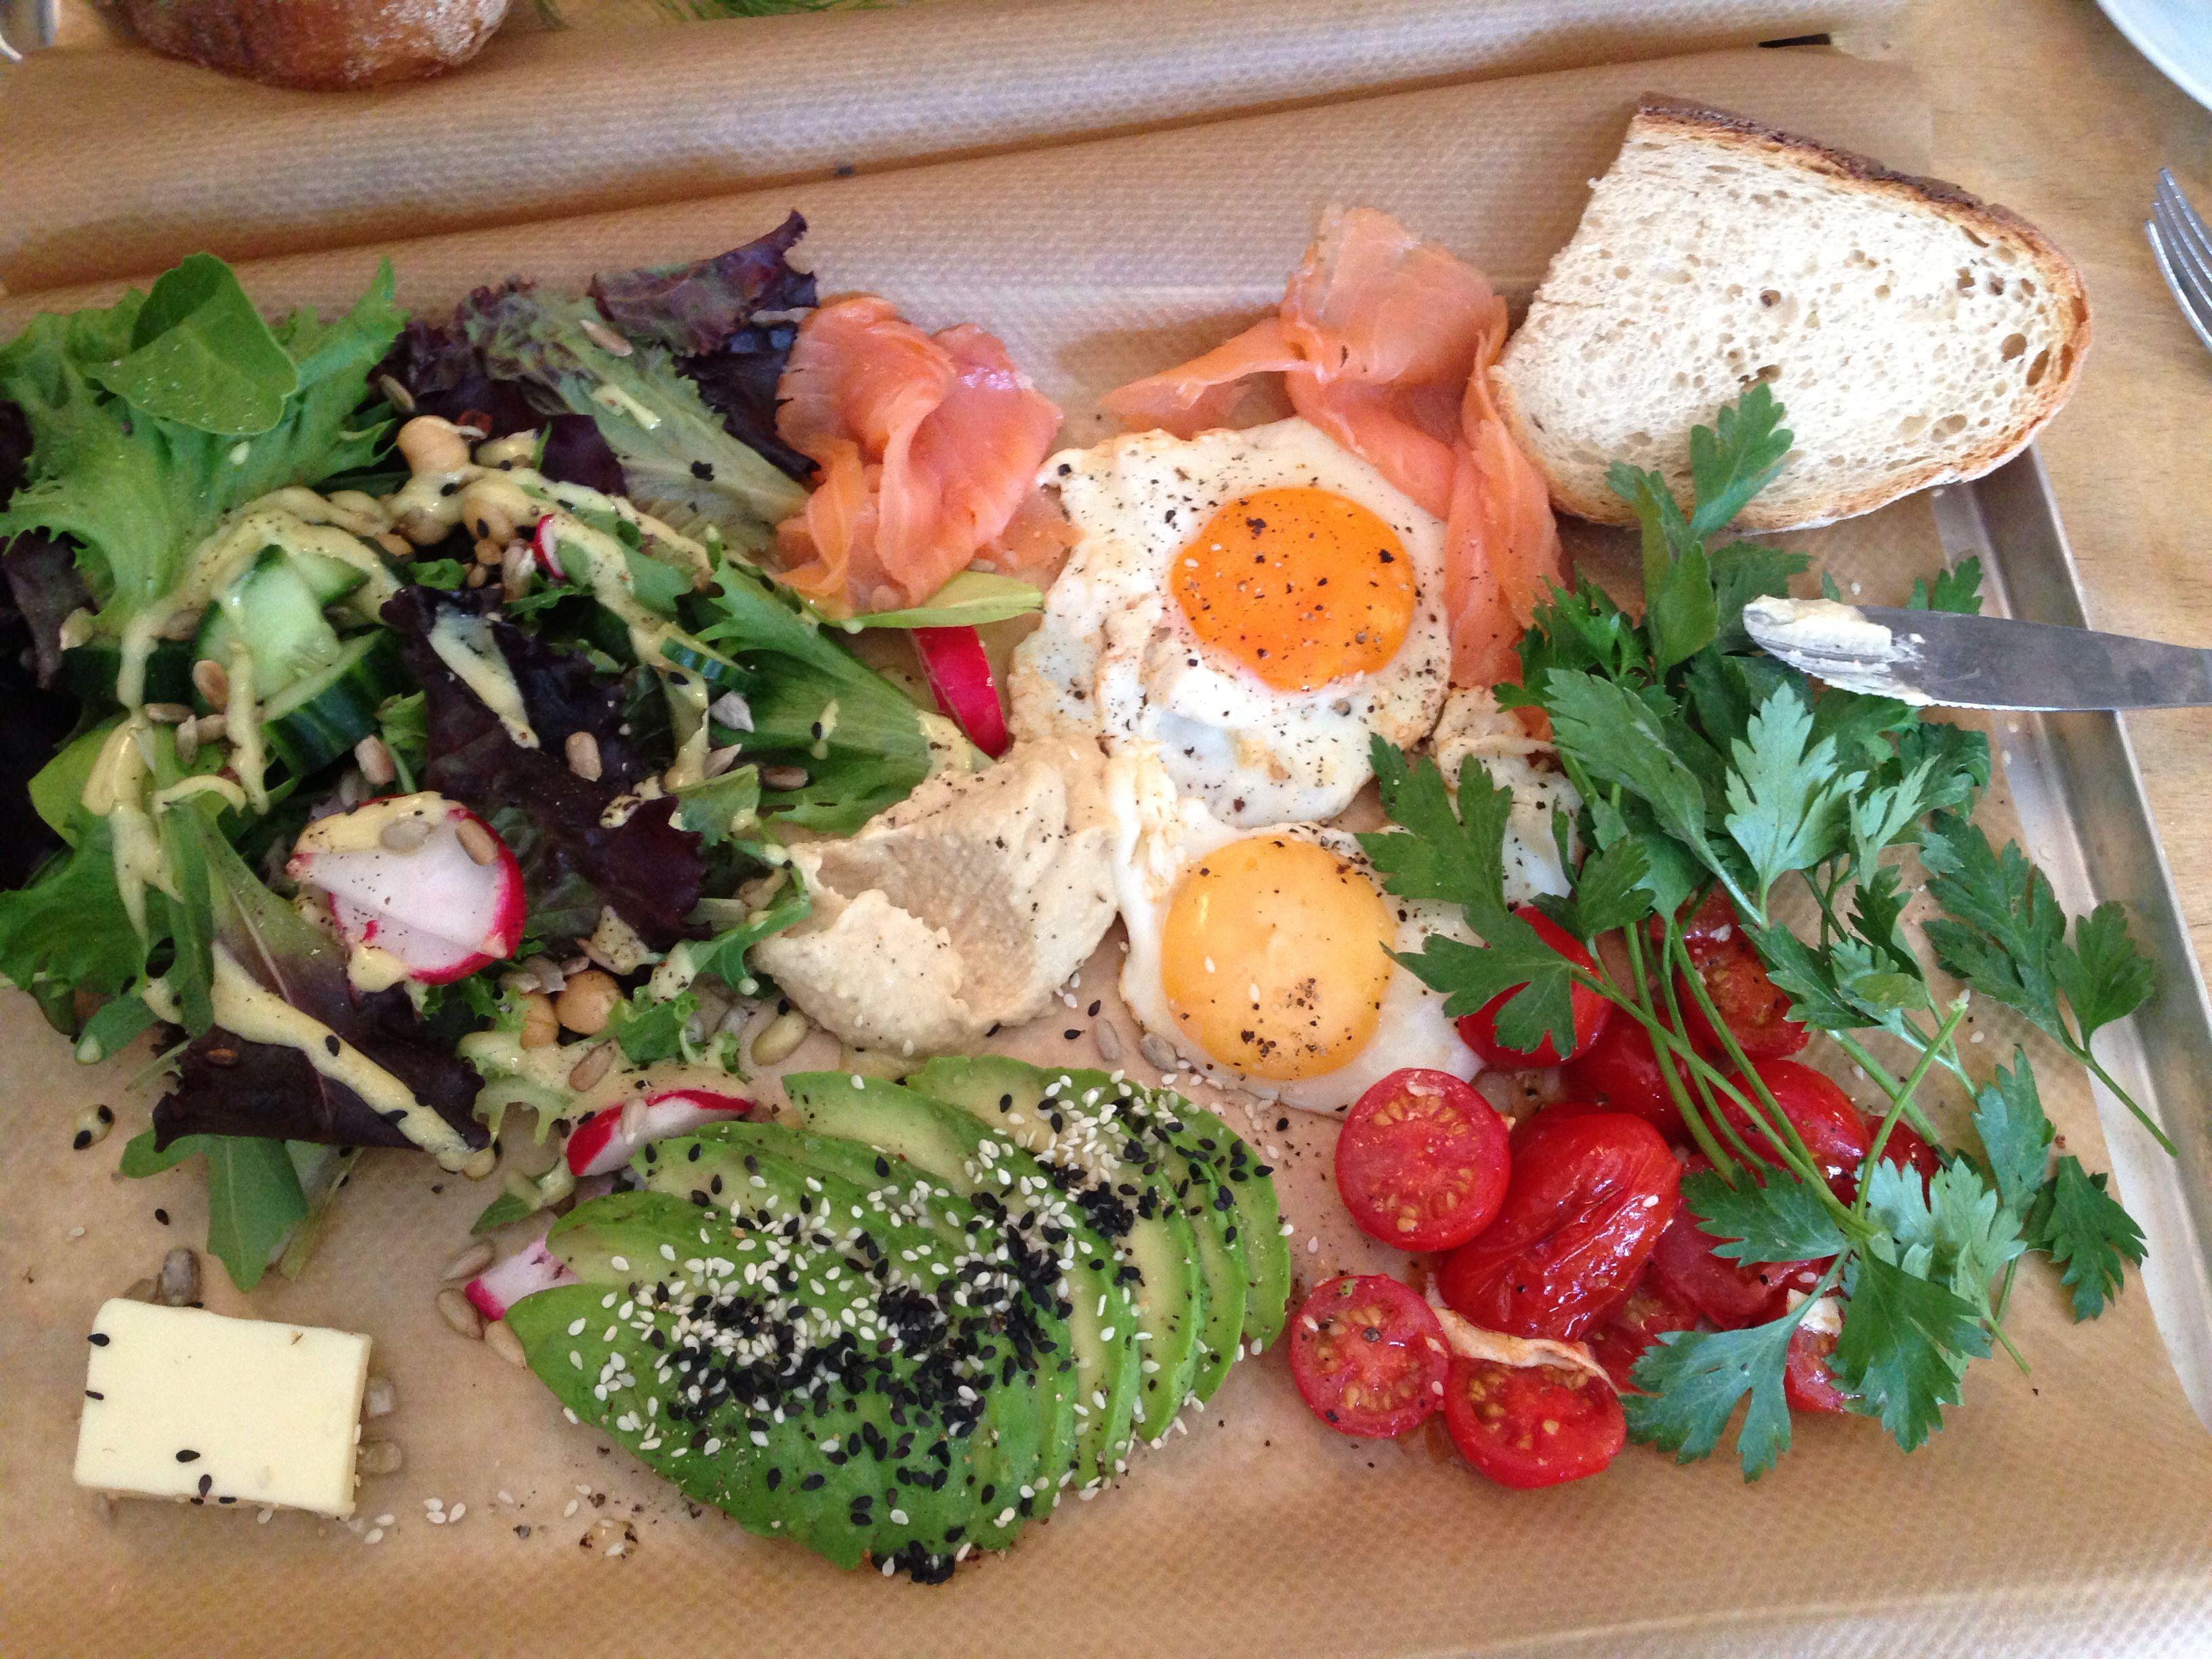 Roamers restaurant in Berlin serves amazing breakfast / lunch dishes perfect for brunch